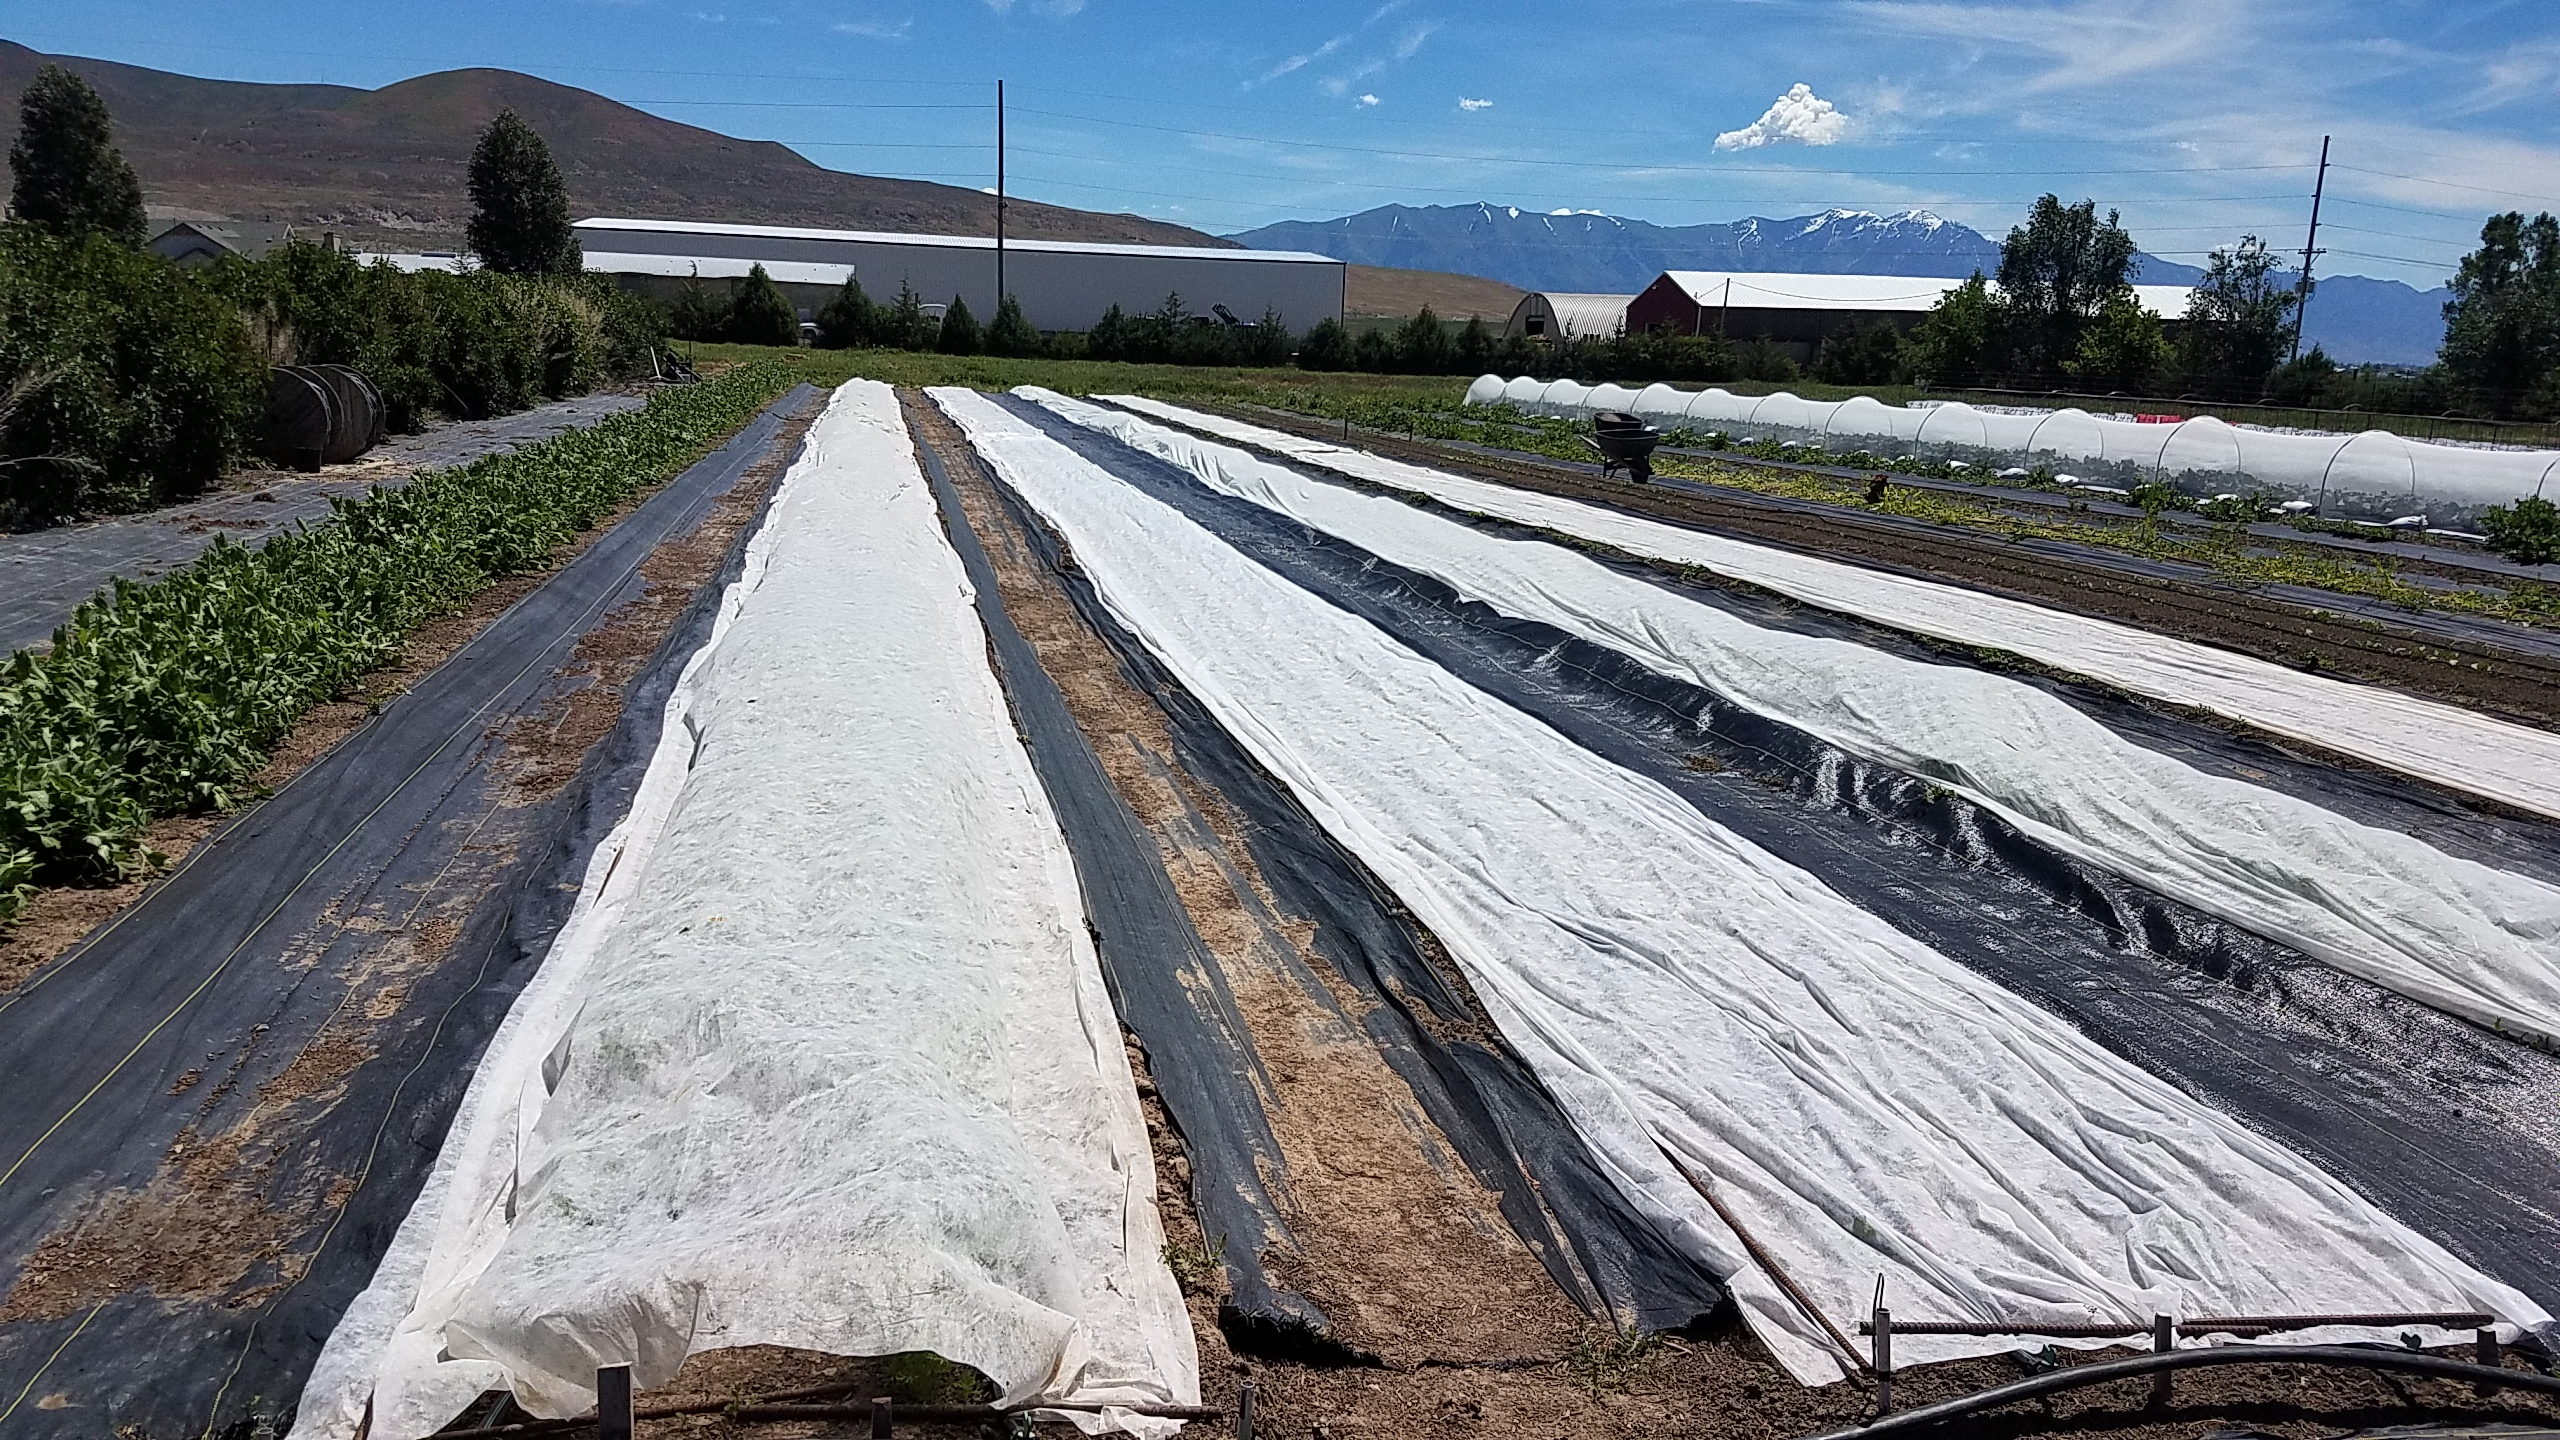 row covers laid directly on crops